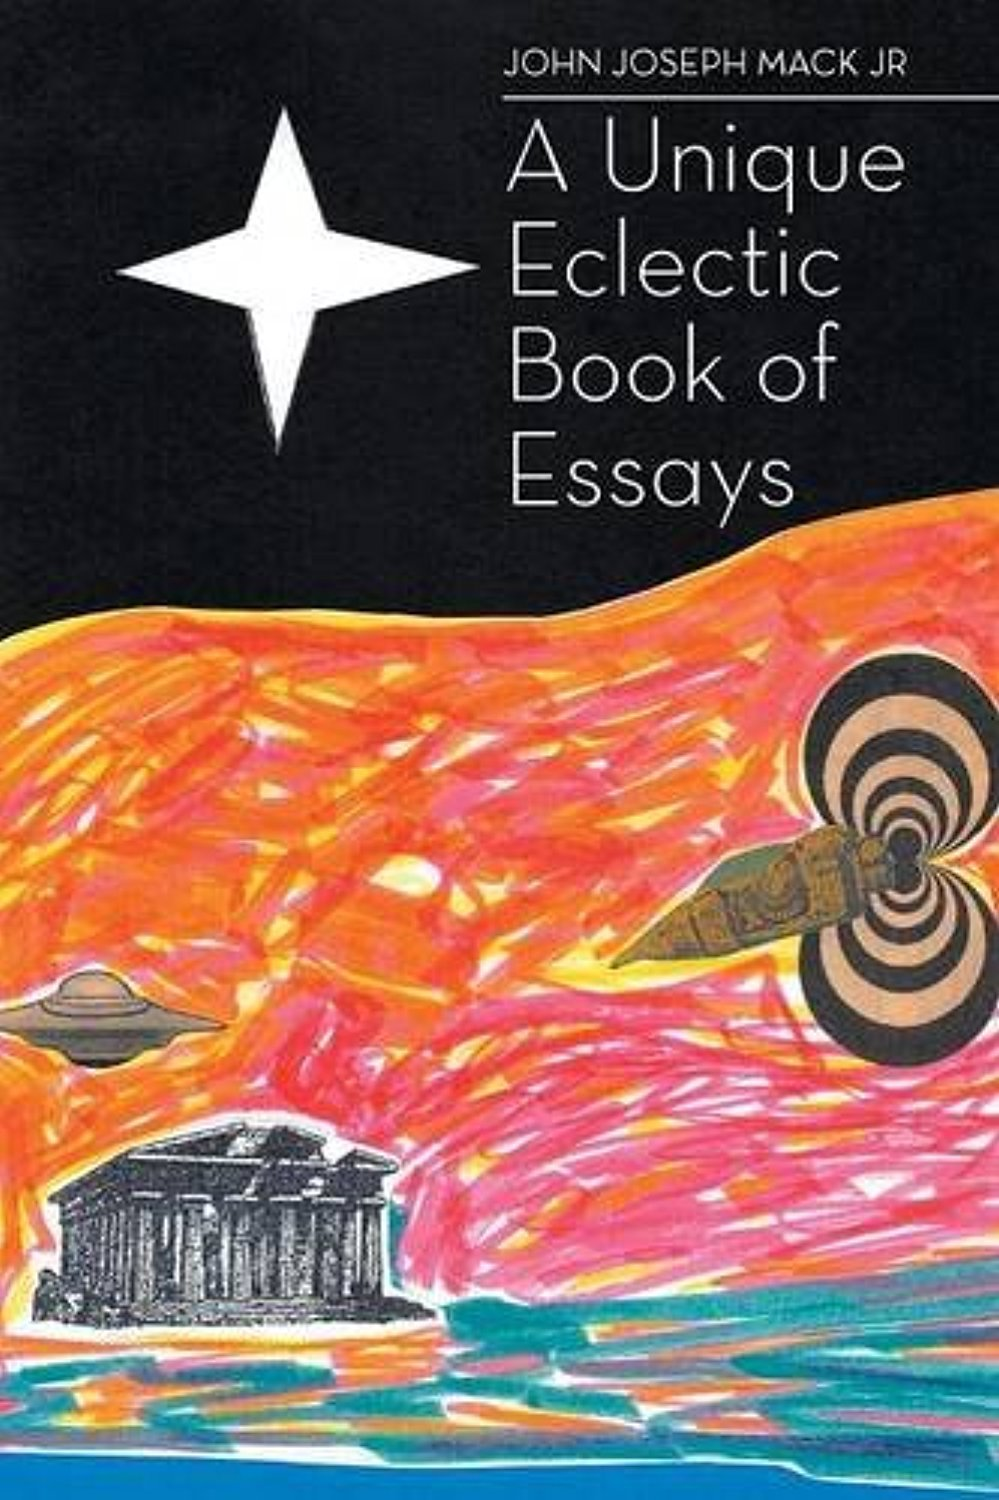 A Unique Eclectic Book of Essays